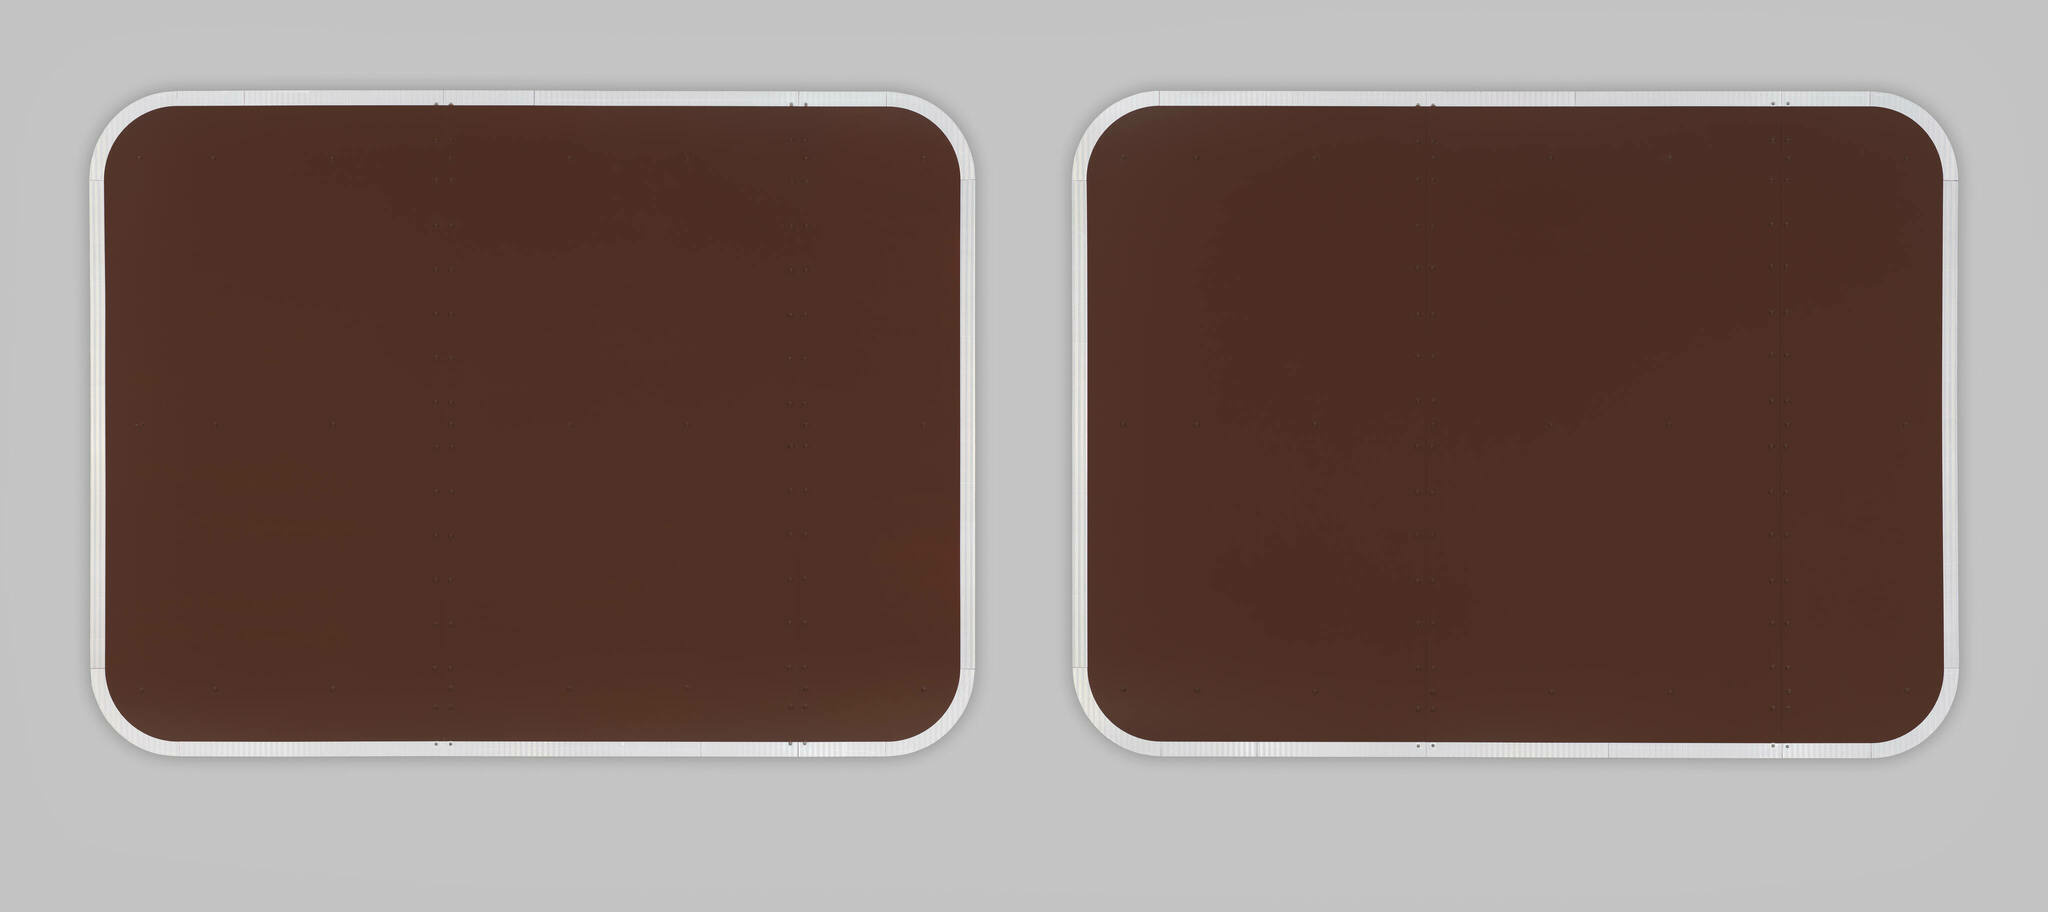 Two monochrome brown rectangular shapes like empty signs, with reflective tape around their edges